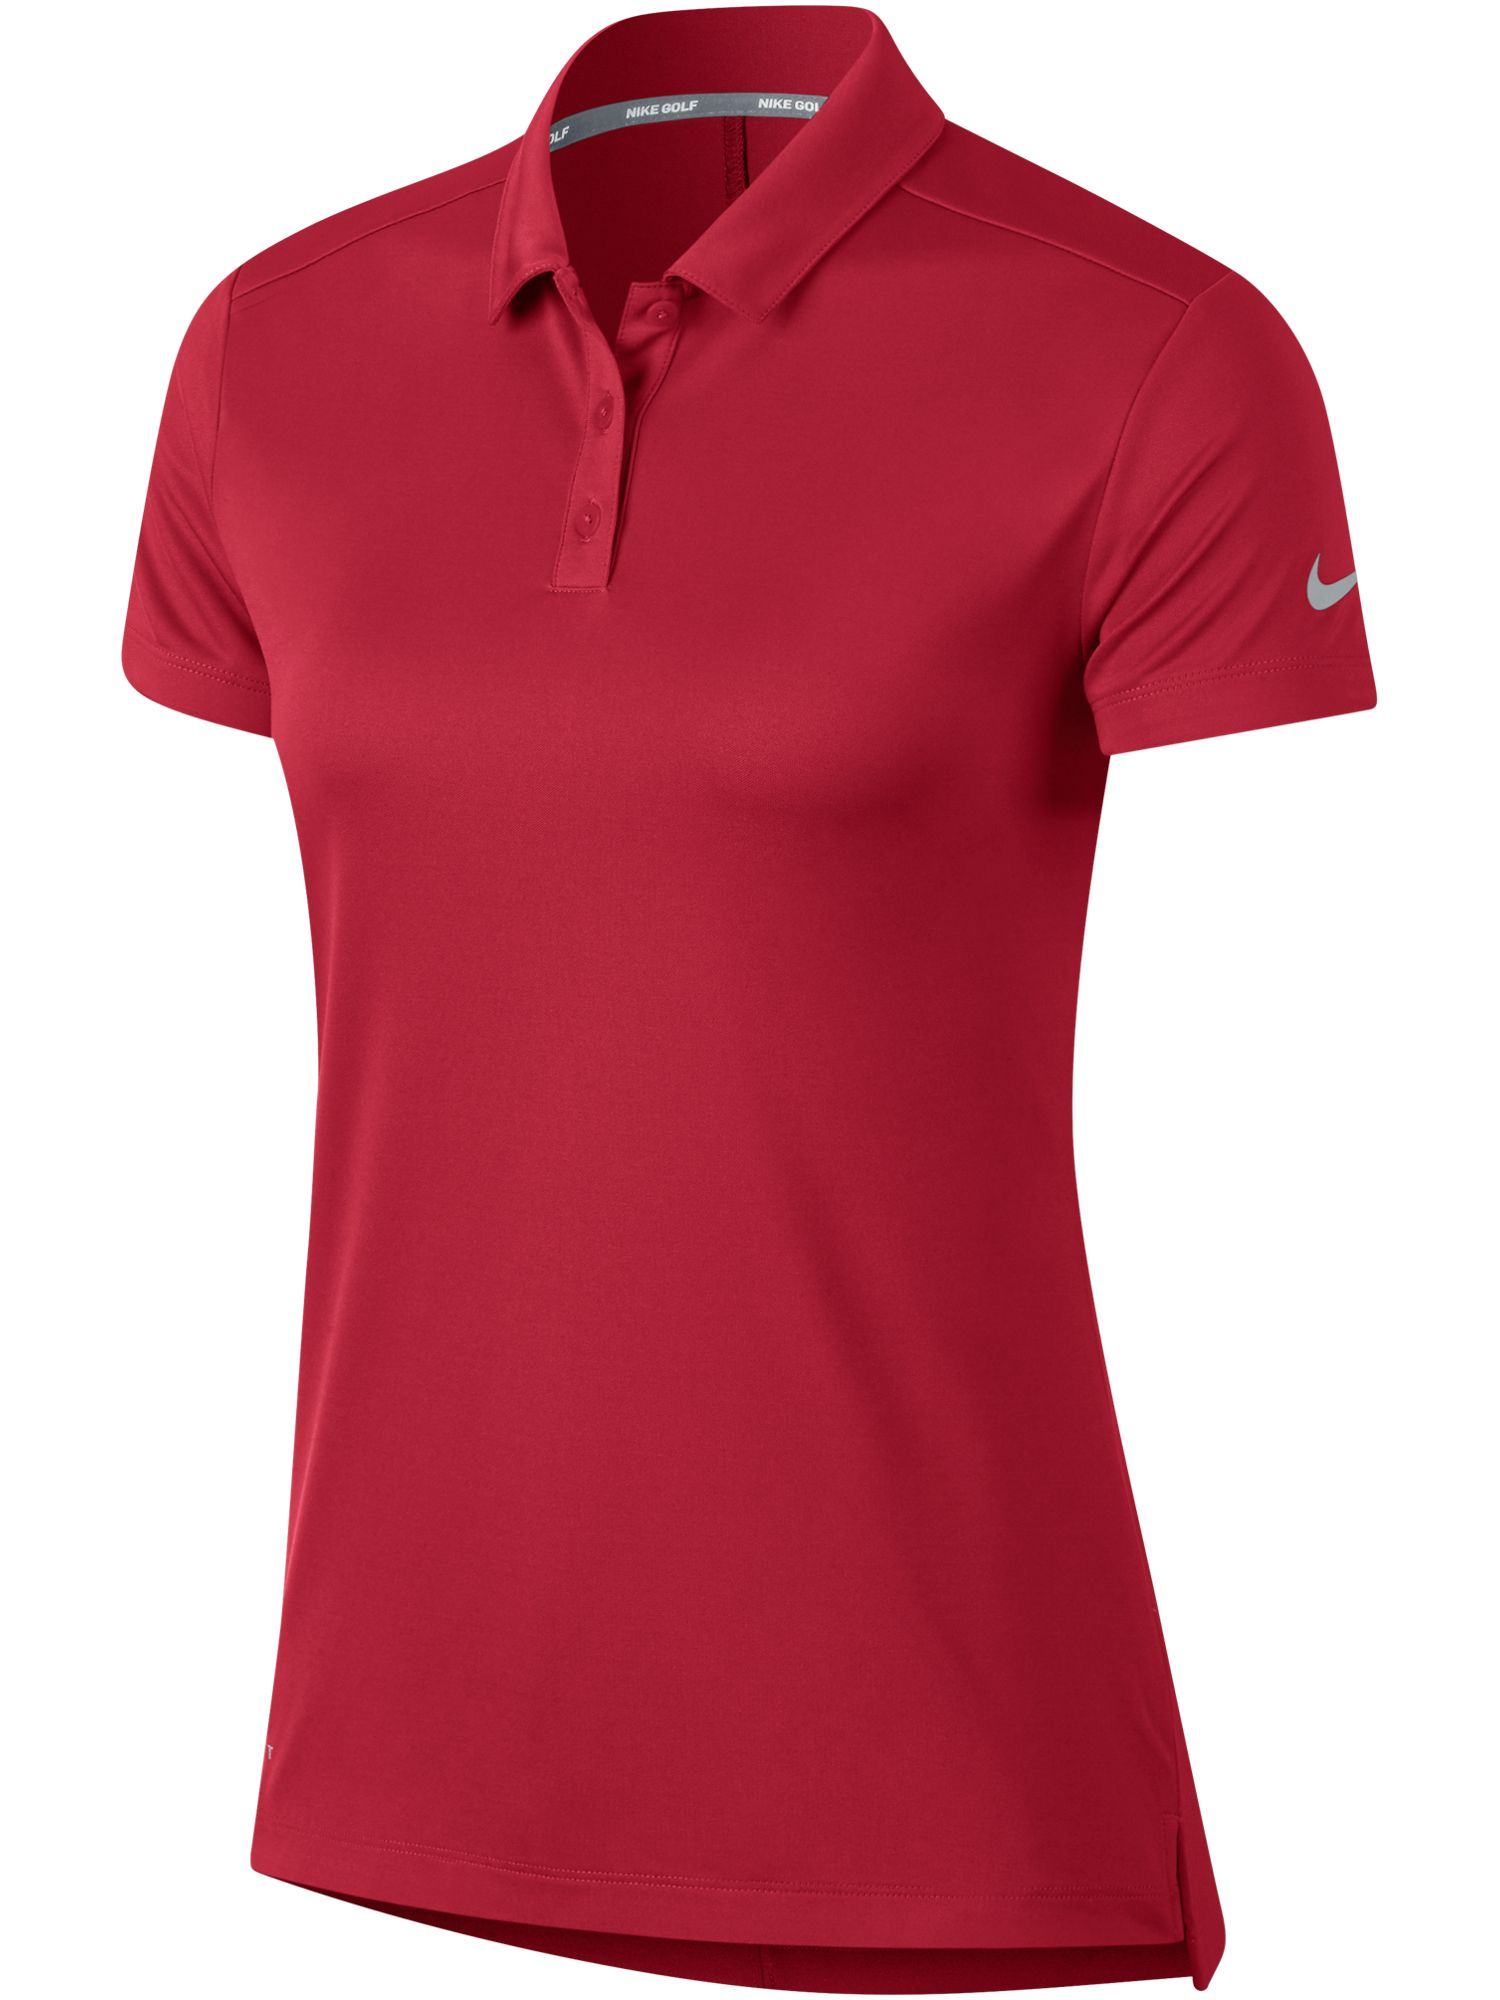 Nike Golf Dry Short Sleeve Polo, Pink Silverlic